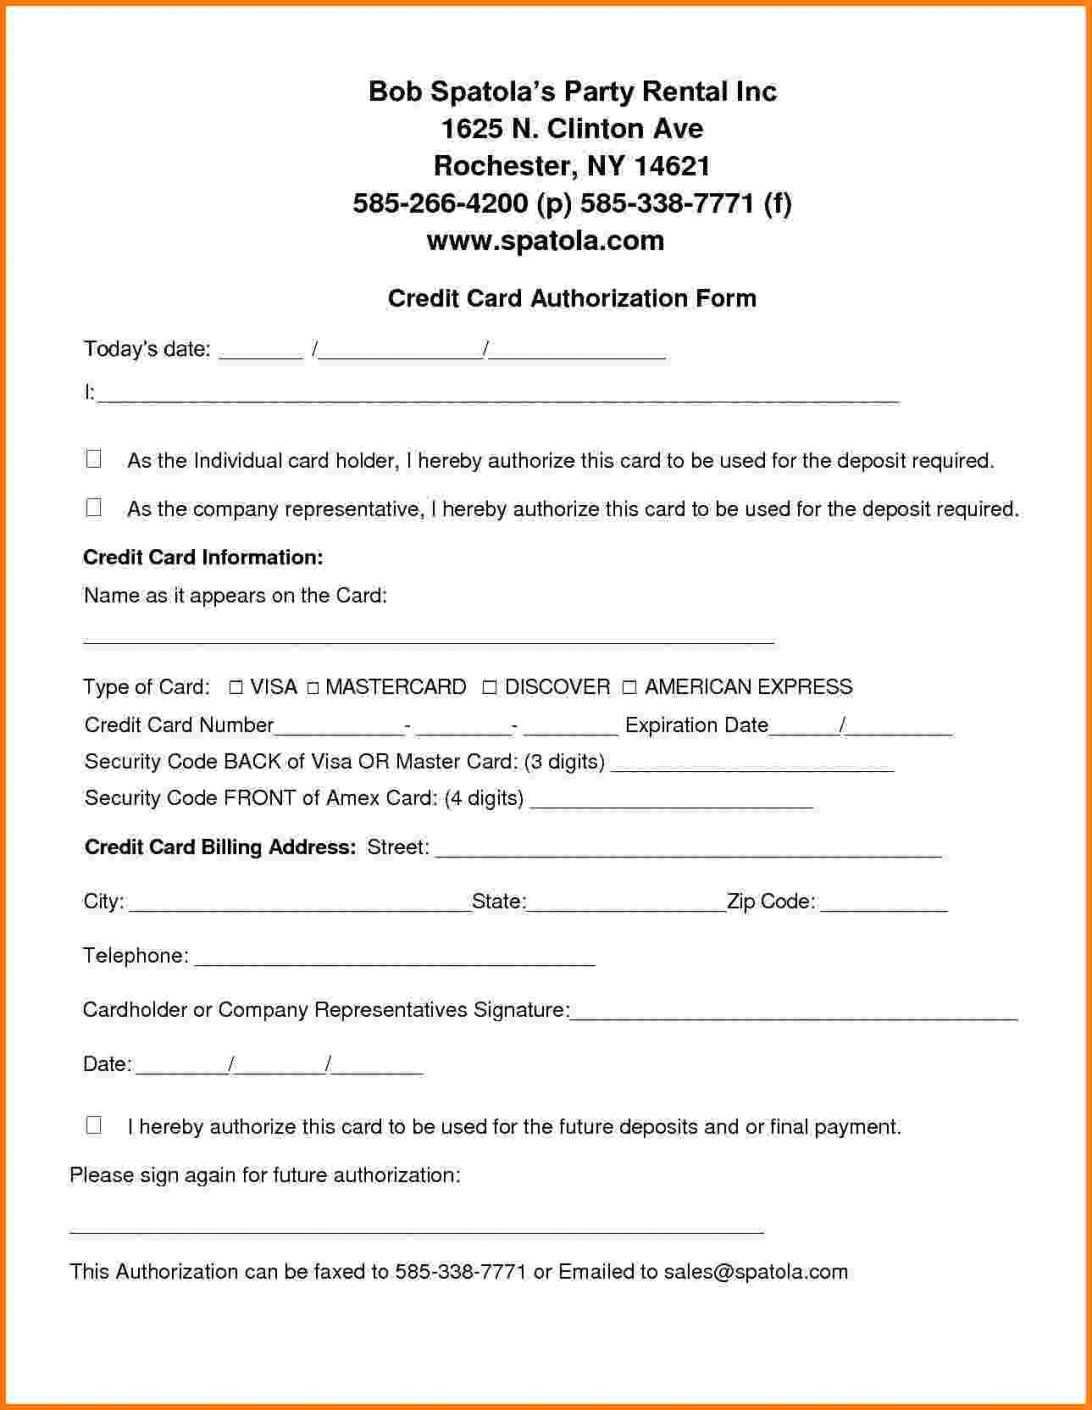 Credit Card Authorization Form Template Holiday Inn Payment With Regard To Credit Card Billing Authorization Form Template